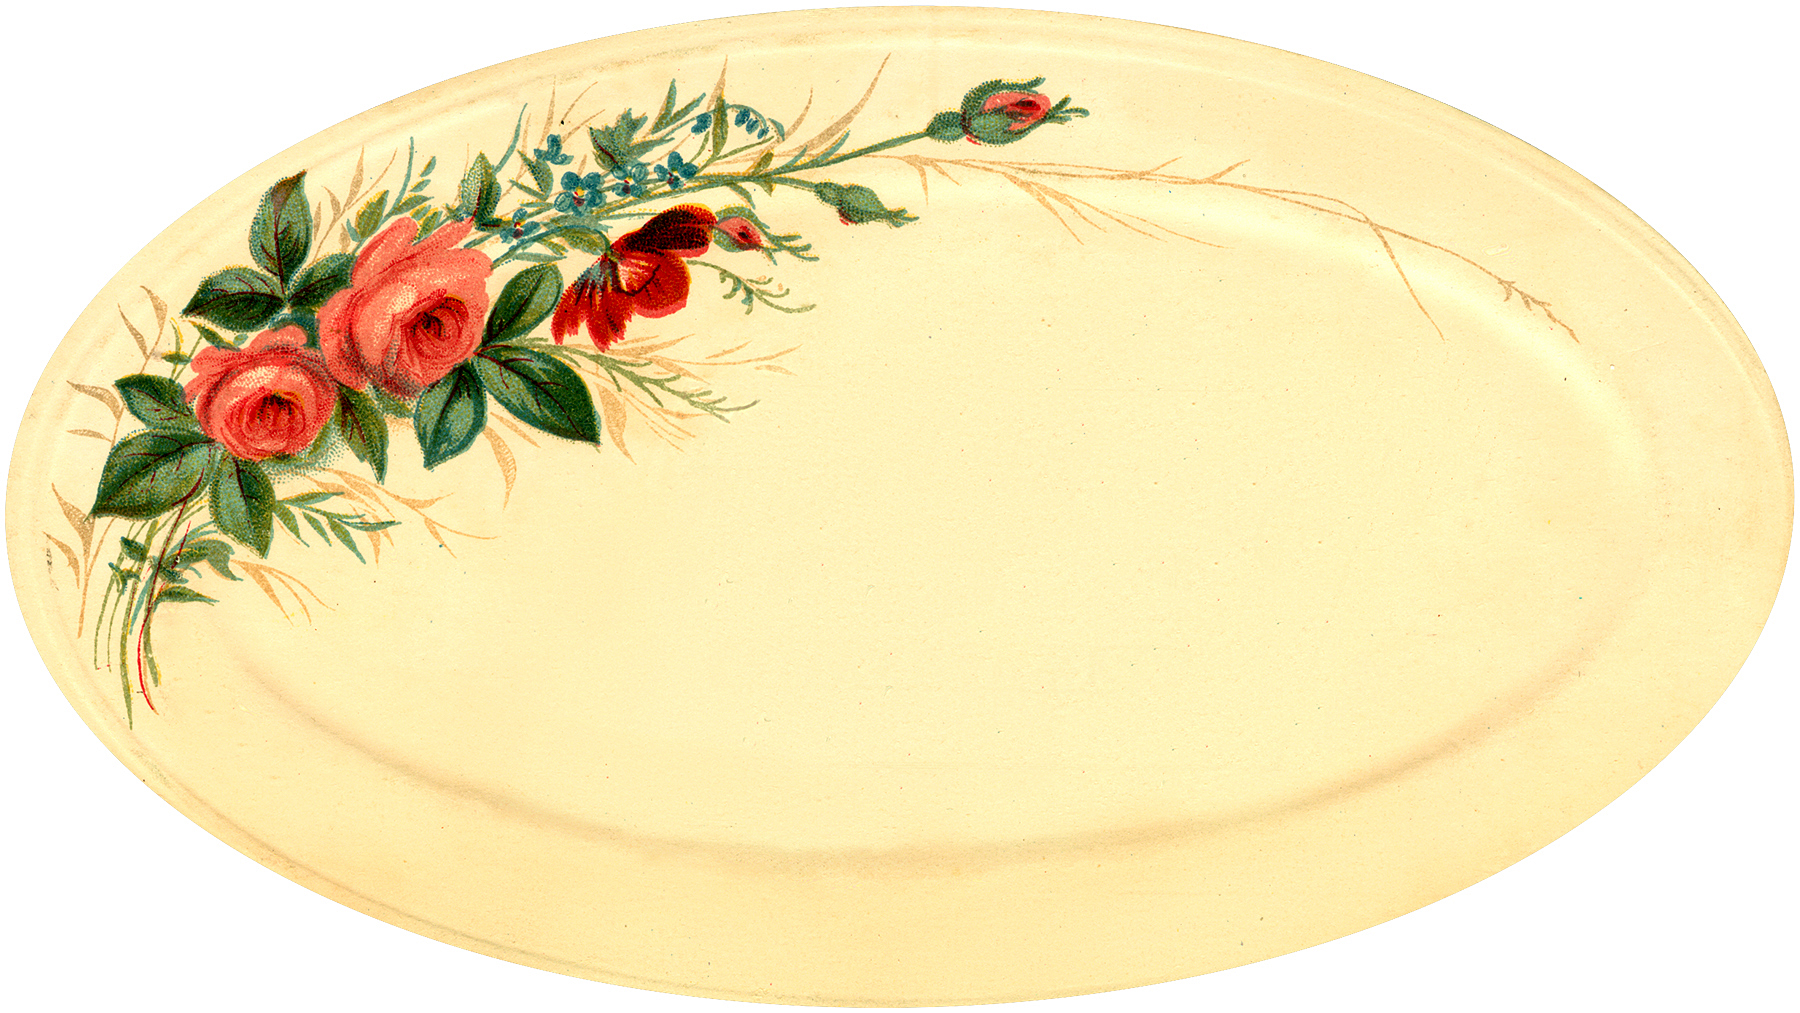 Vintage China Rose Platter Image